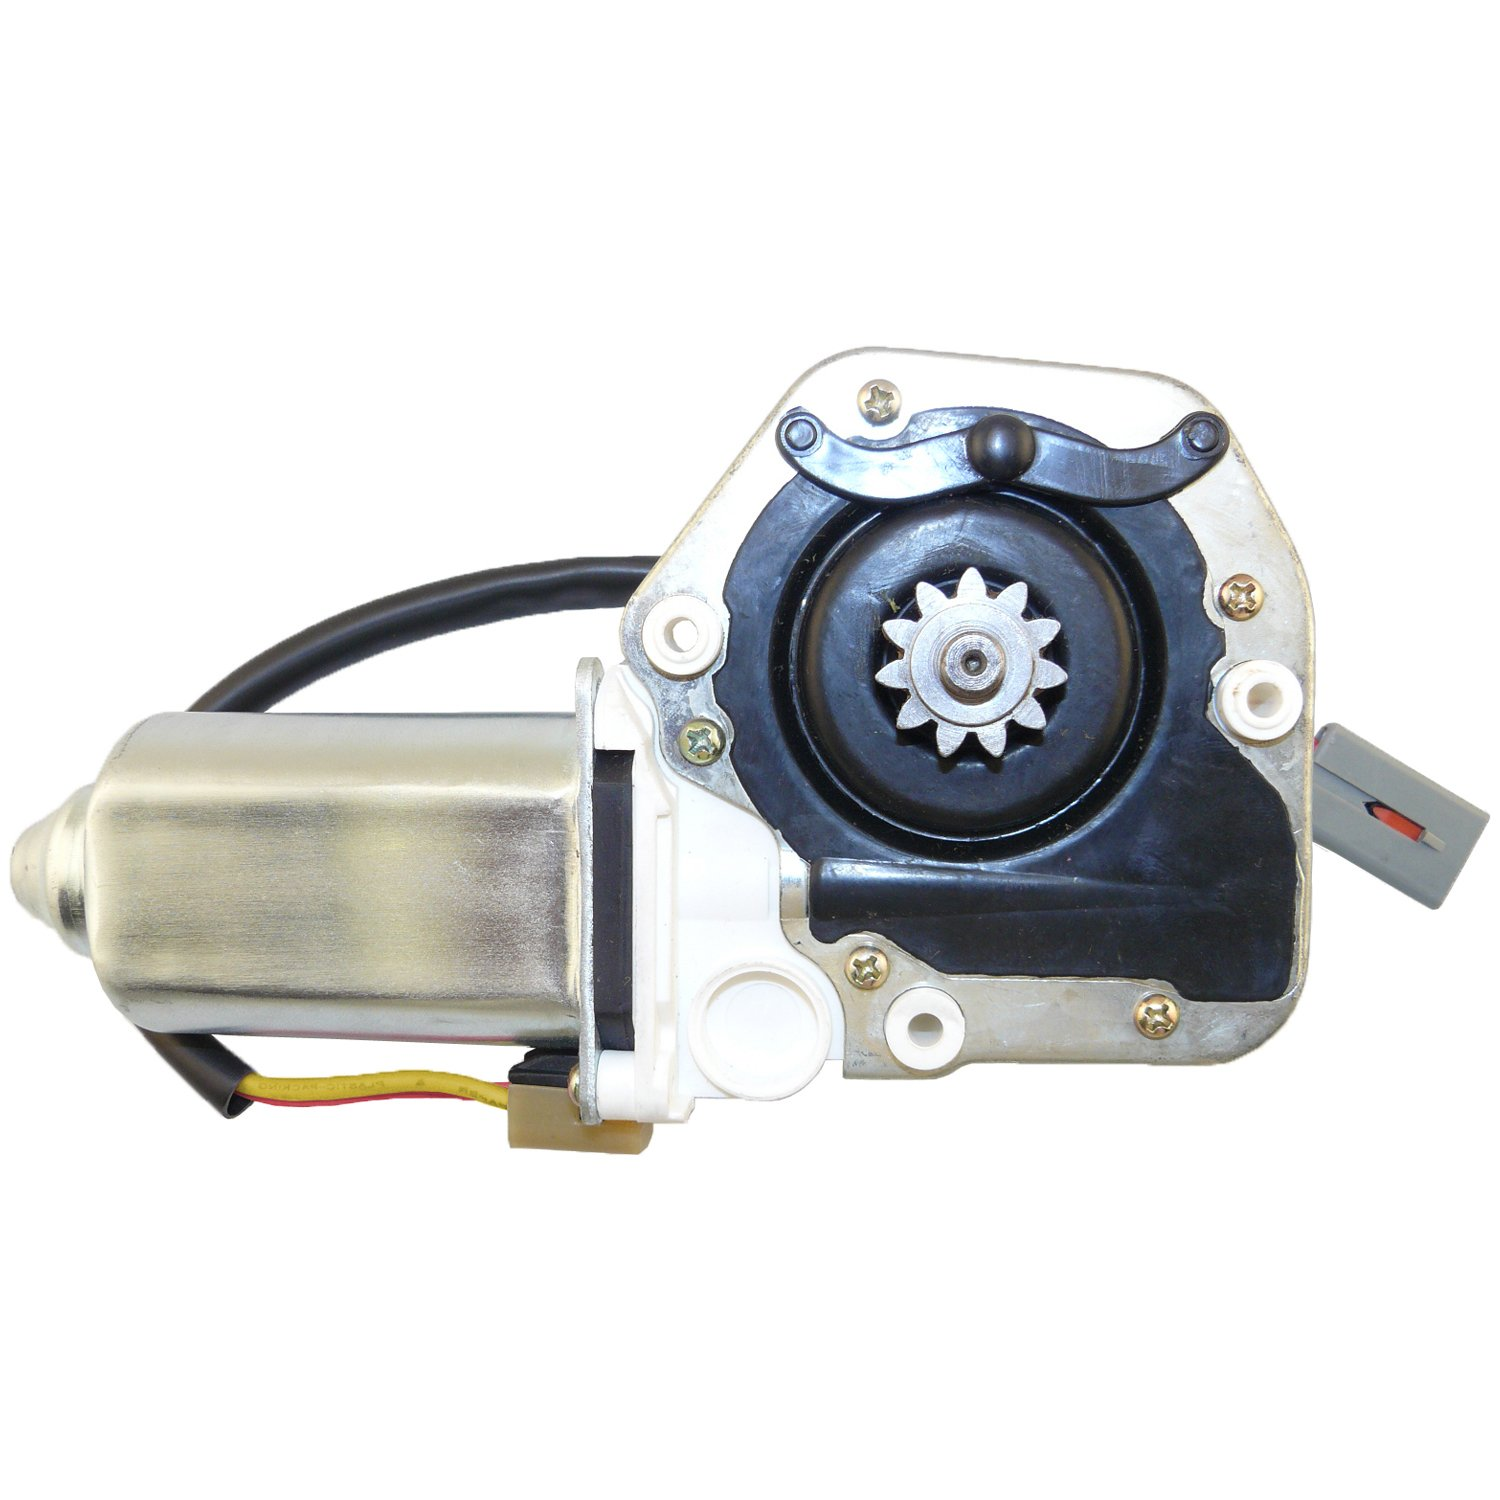 ACDelco 11M57 Professional Driver Side Power Window Motor 11M57-ACD